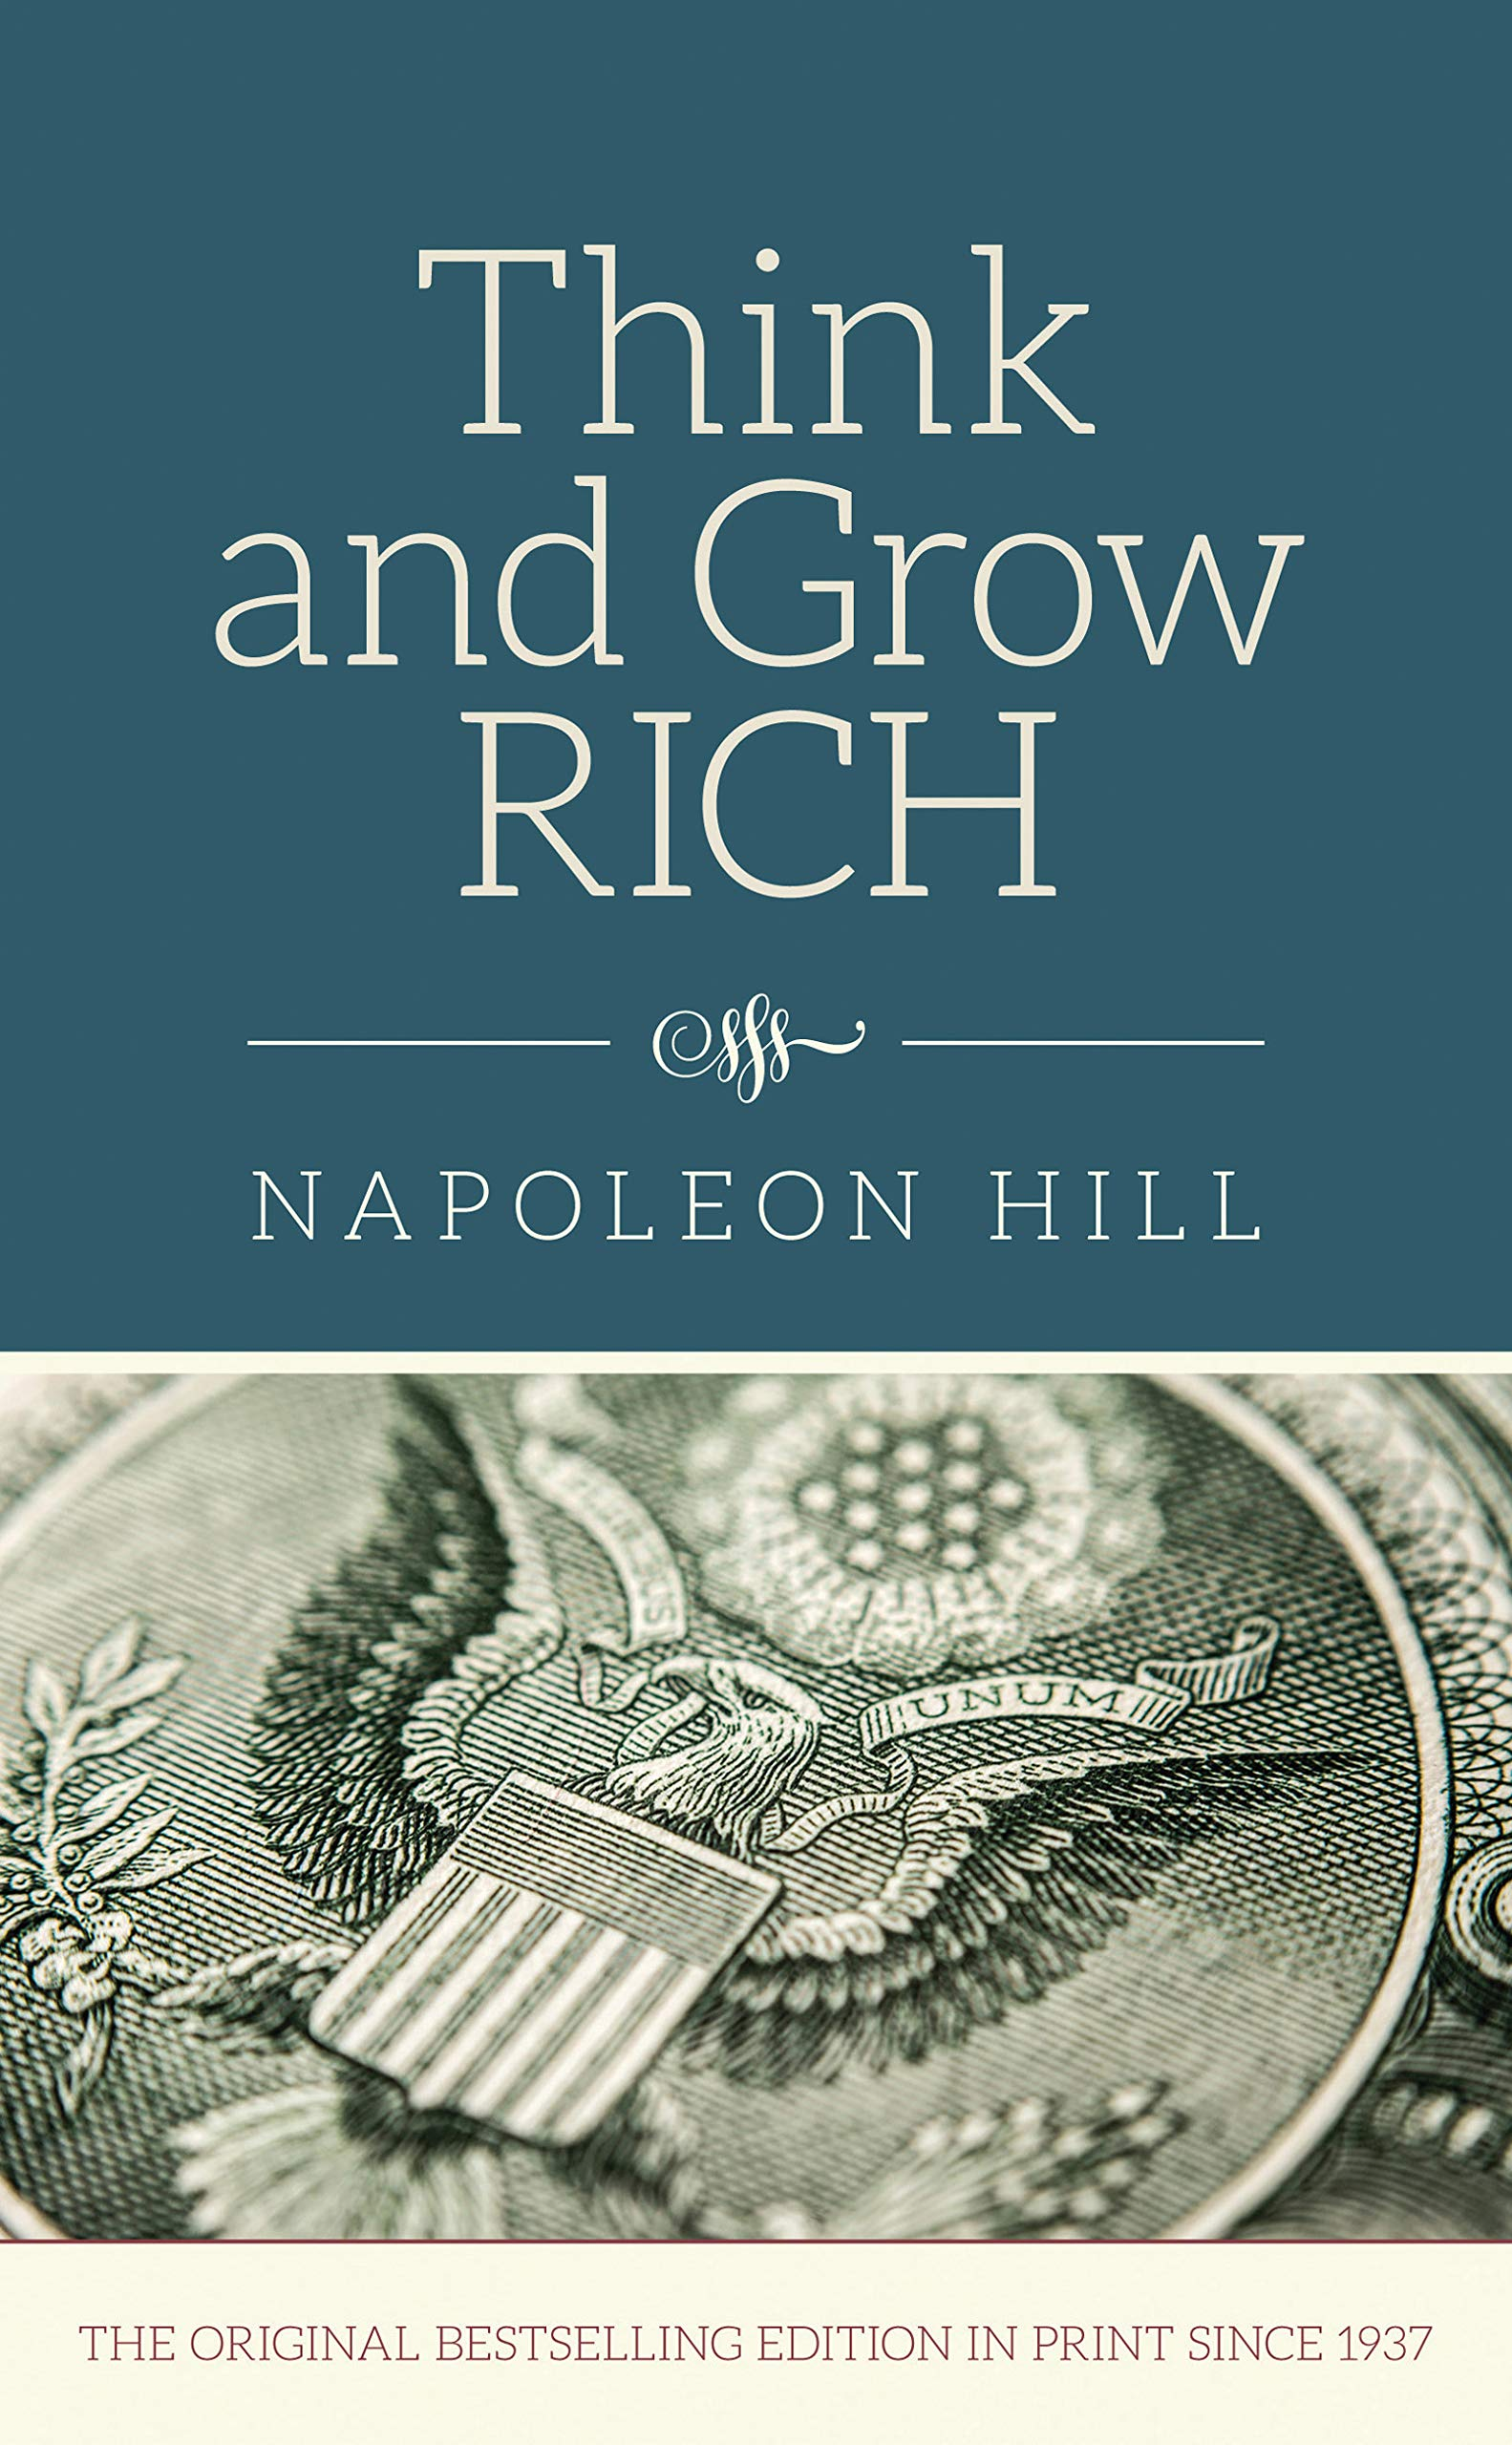 Image OfTHINK & GROW RICH